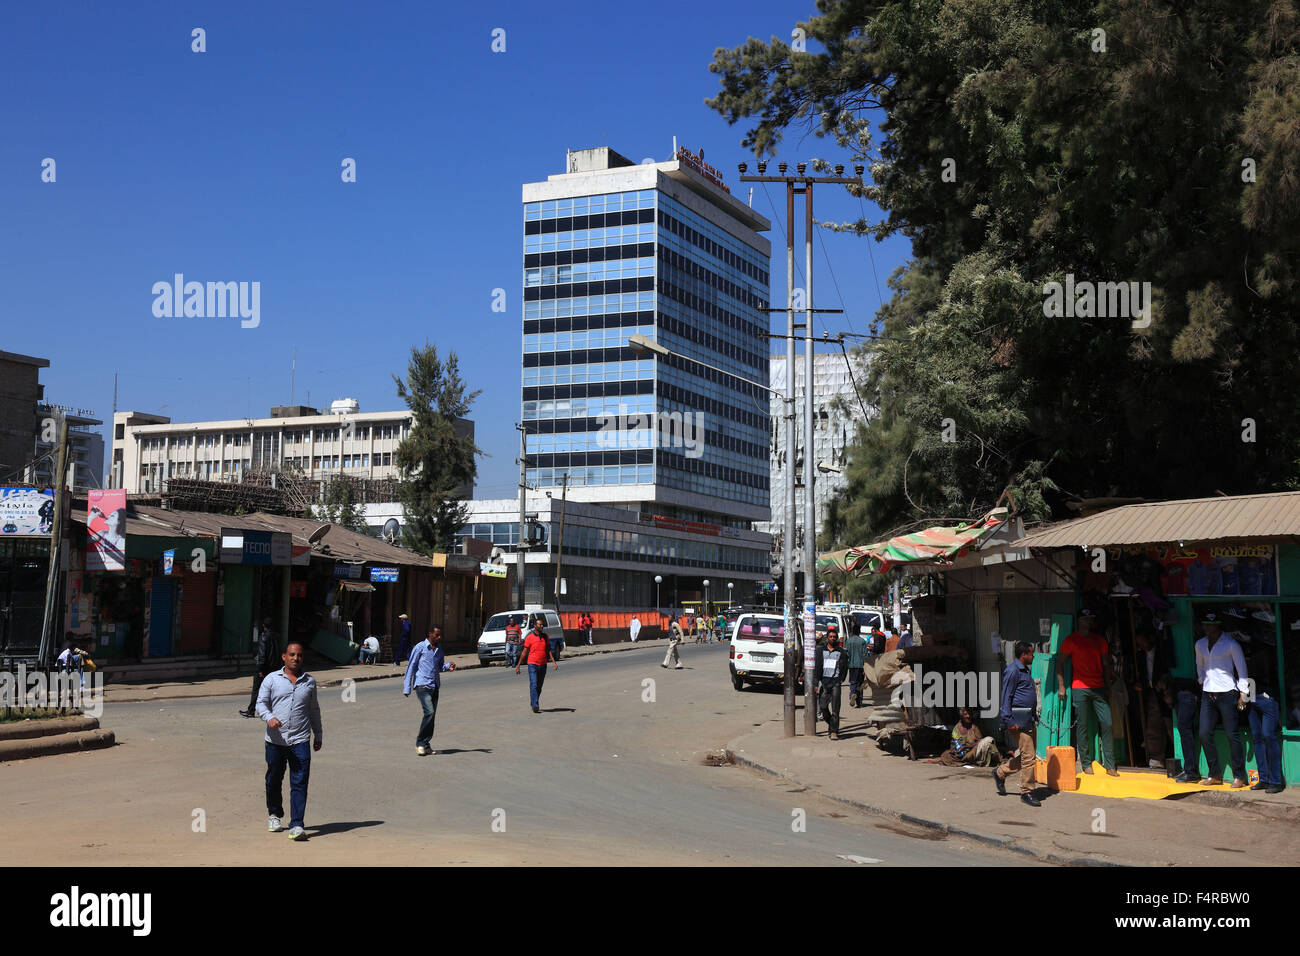 City center office spacejpg Carr Workplaces Addis Ababa Street Scene In The City Center Highrise Office Building Kmc Savills Addis Ababa Street Scene In The City Center Highrise Office Stock